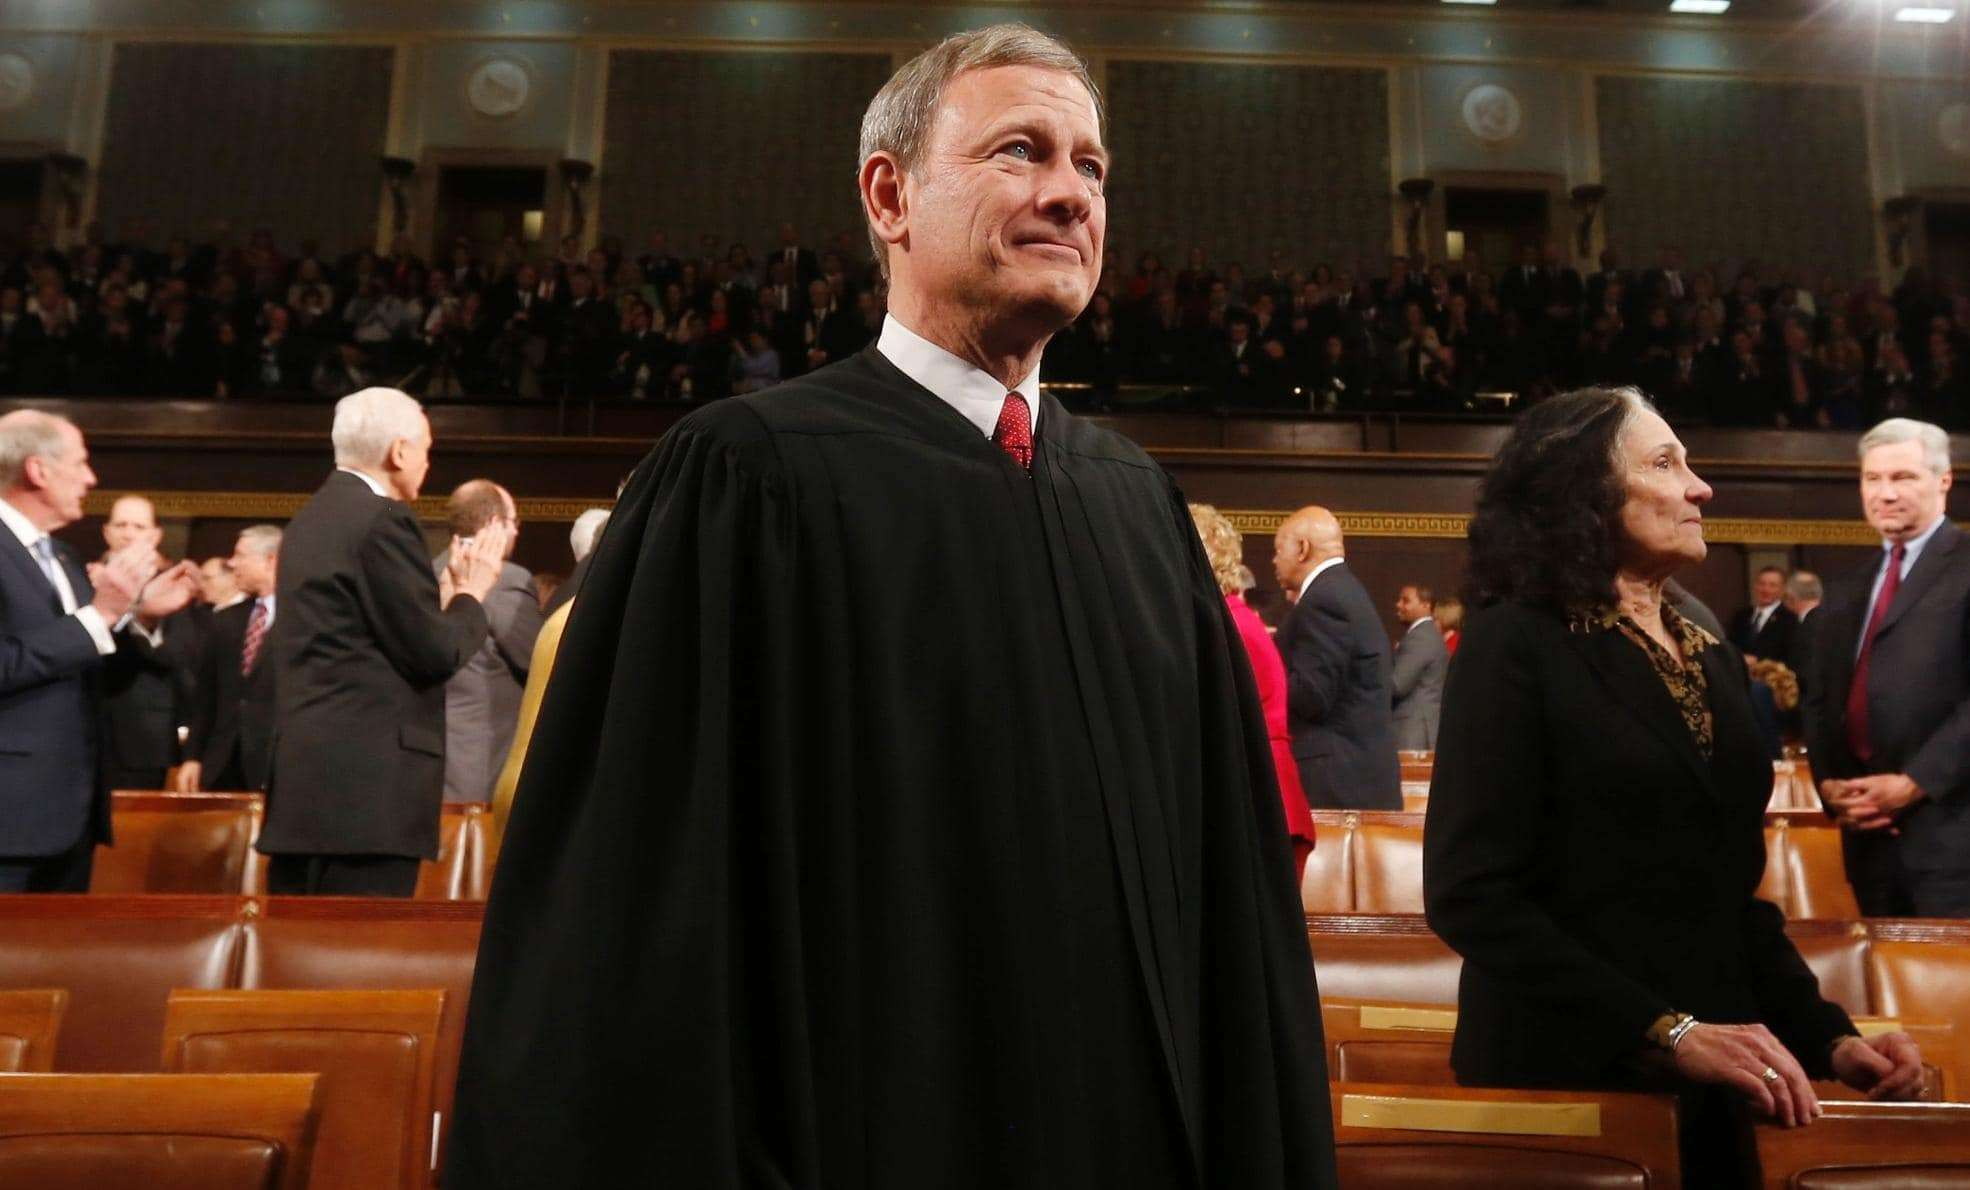 U.S. Supreme Court Chief Justice John Roberts arrives prior to President Barack Obama's State of the Union speech on Capitol Hill in Washington, in this file photo taken January 28, 2014. (REUTERS/Larry Downing/Files)